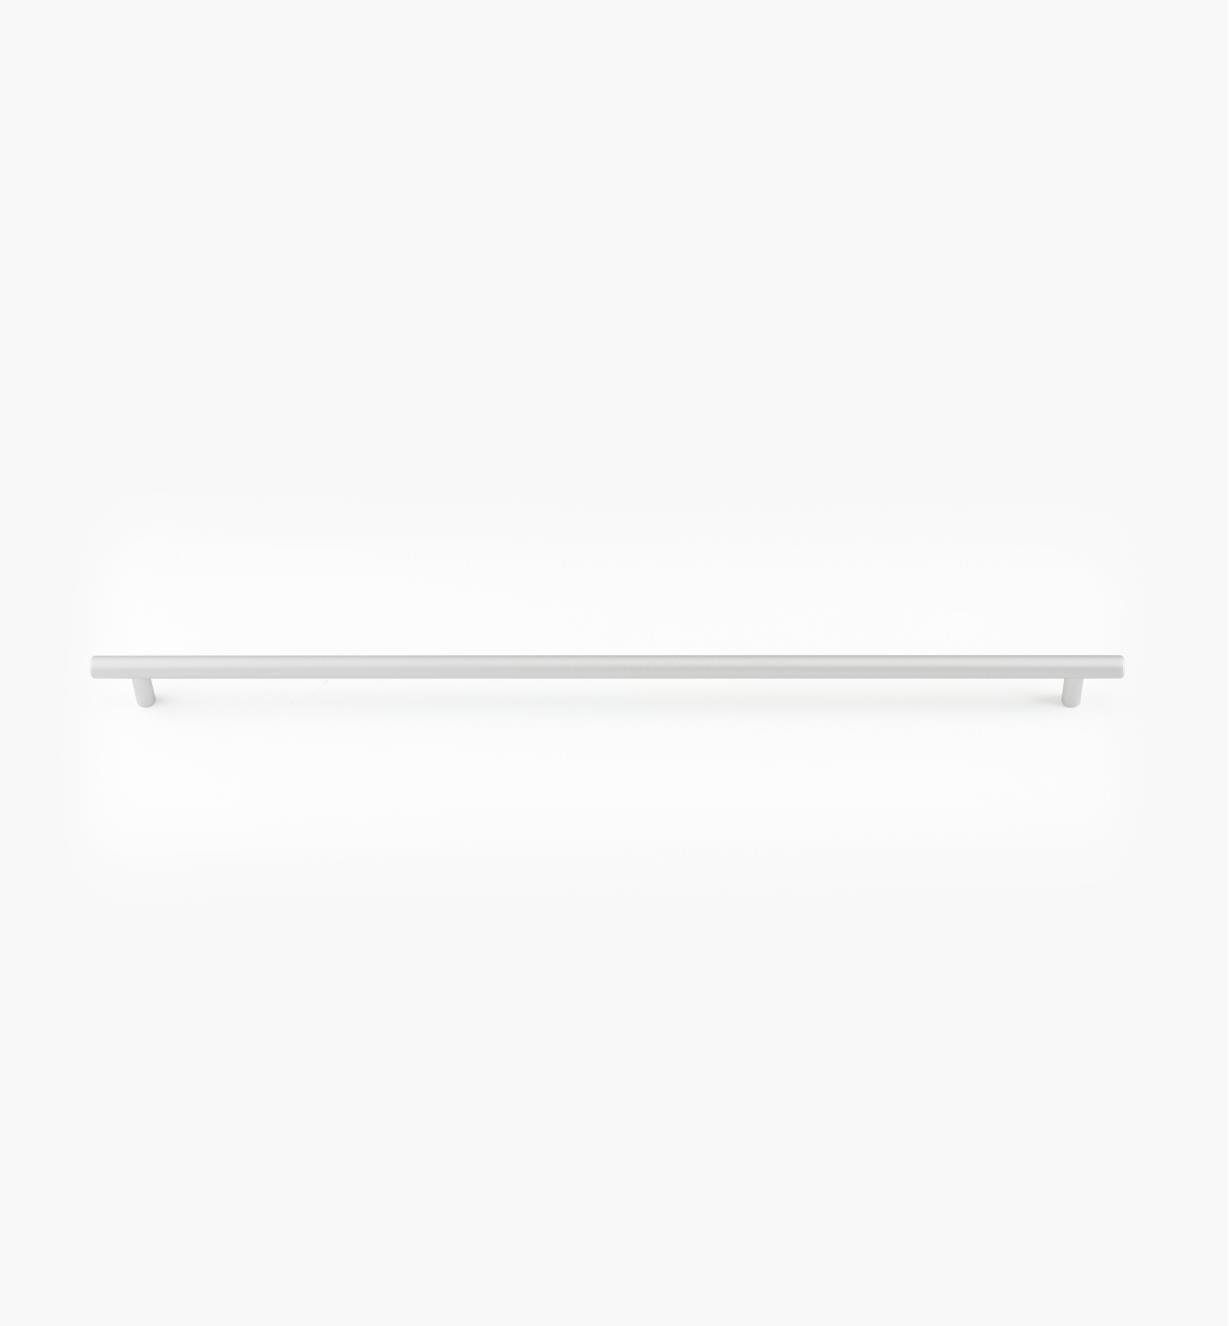 01W9748 - 480mm Alum. Bar Handle